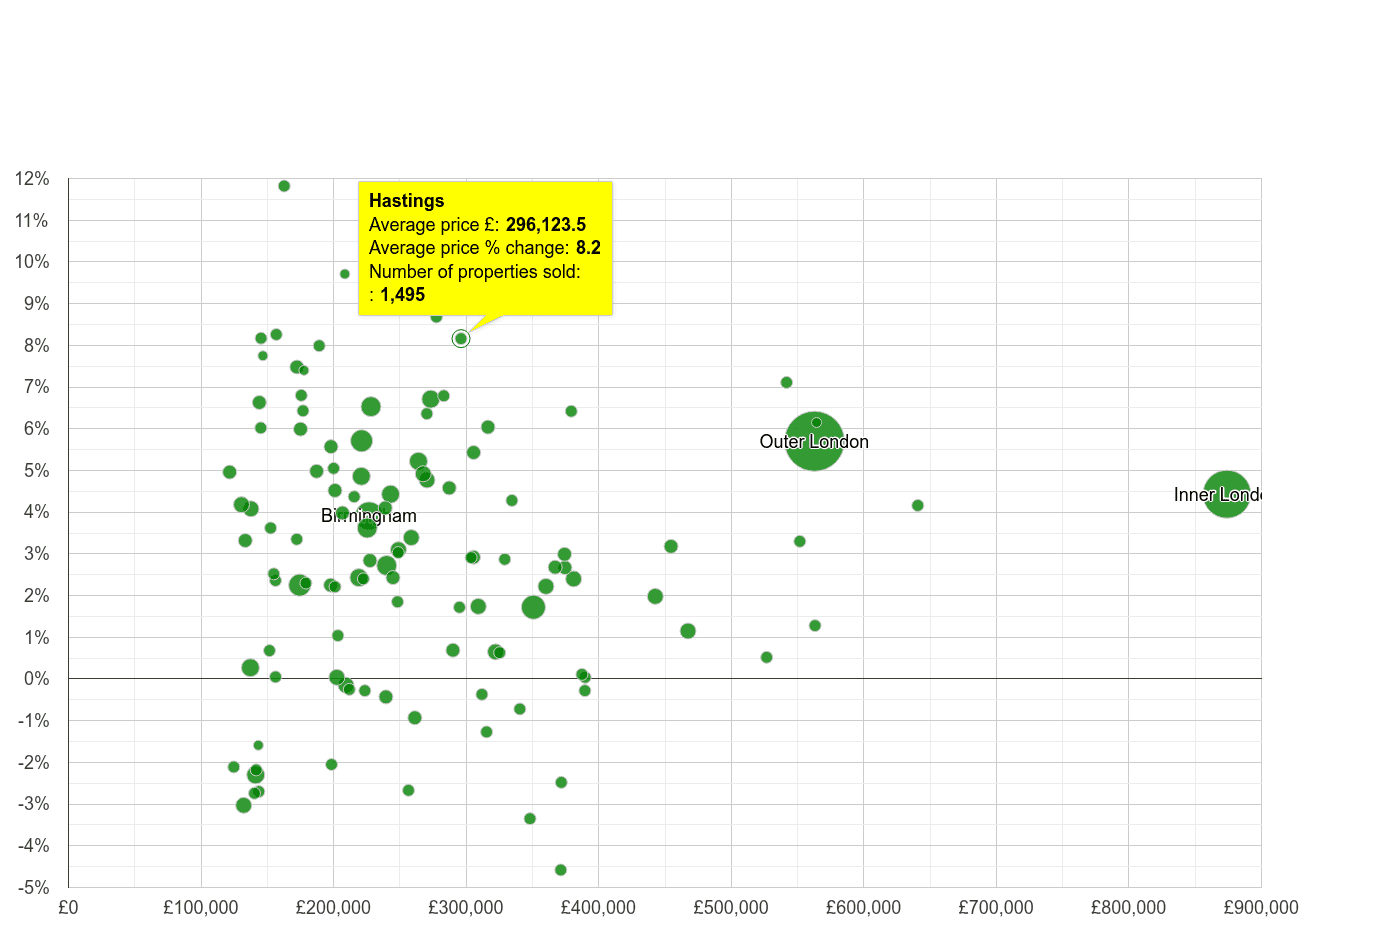 Hastings house prices compared to other cities